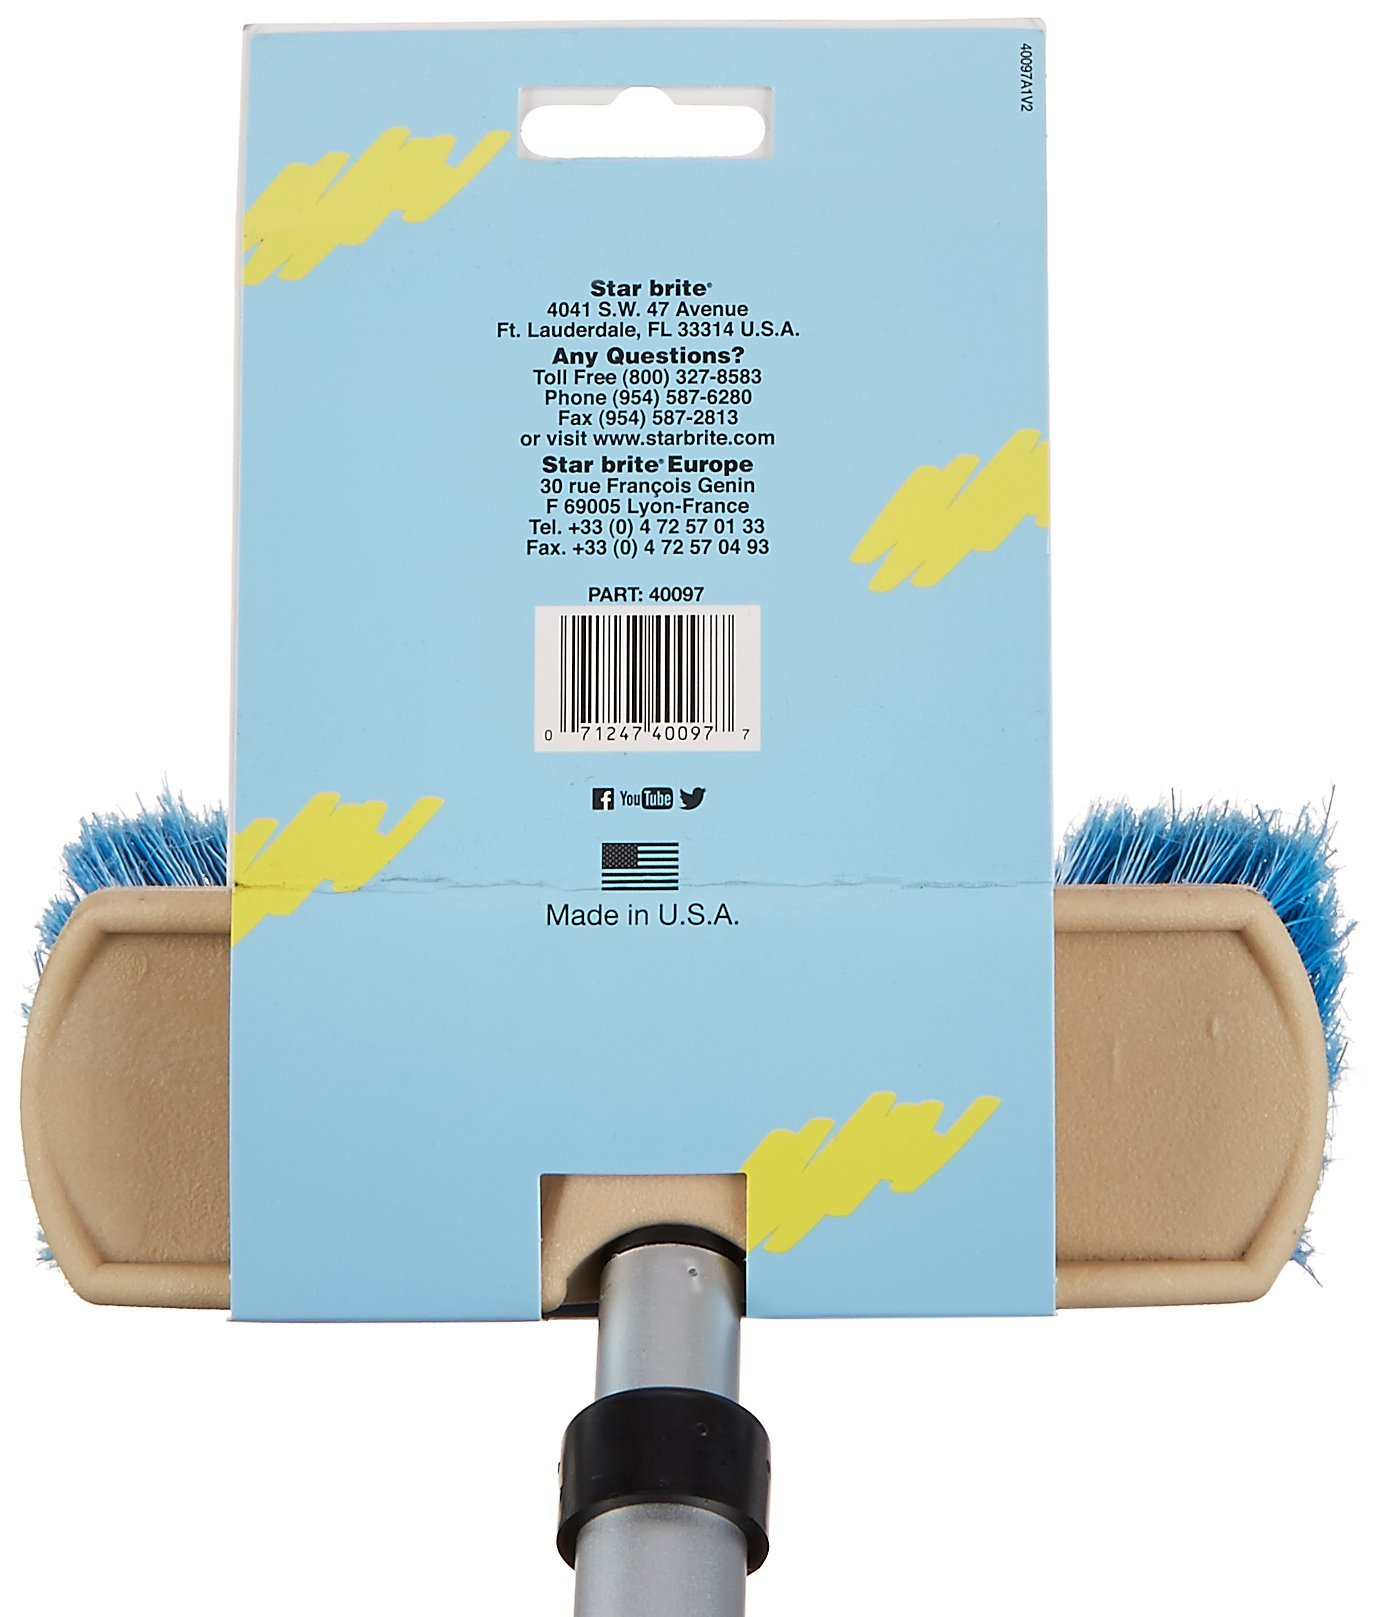 Star brite Brush & Compact Handle Combo - Extends 2'-4' - Made in USA by Star Brite (Image #4)